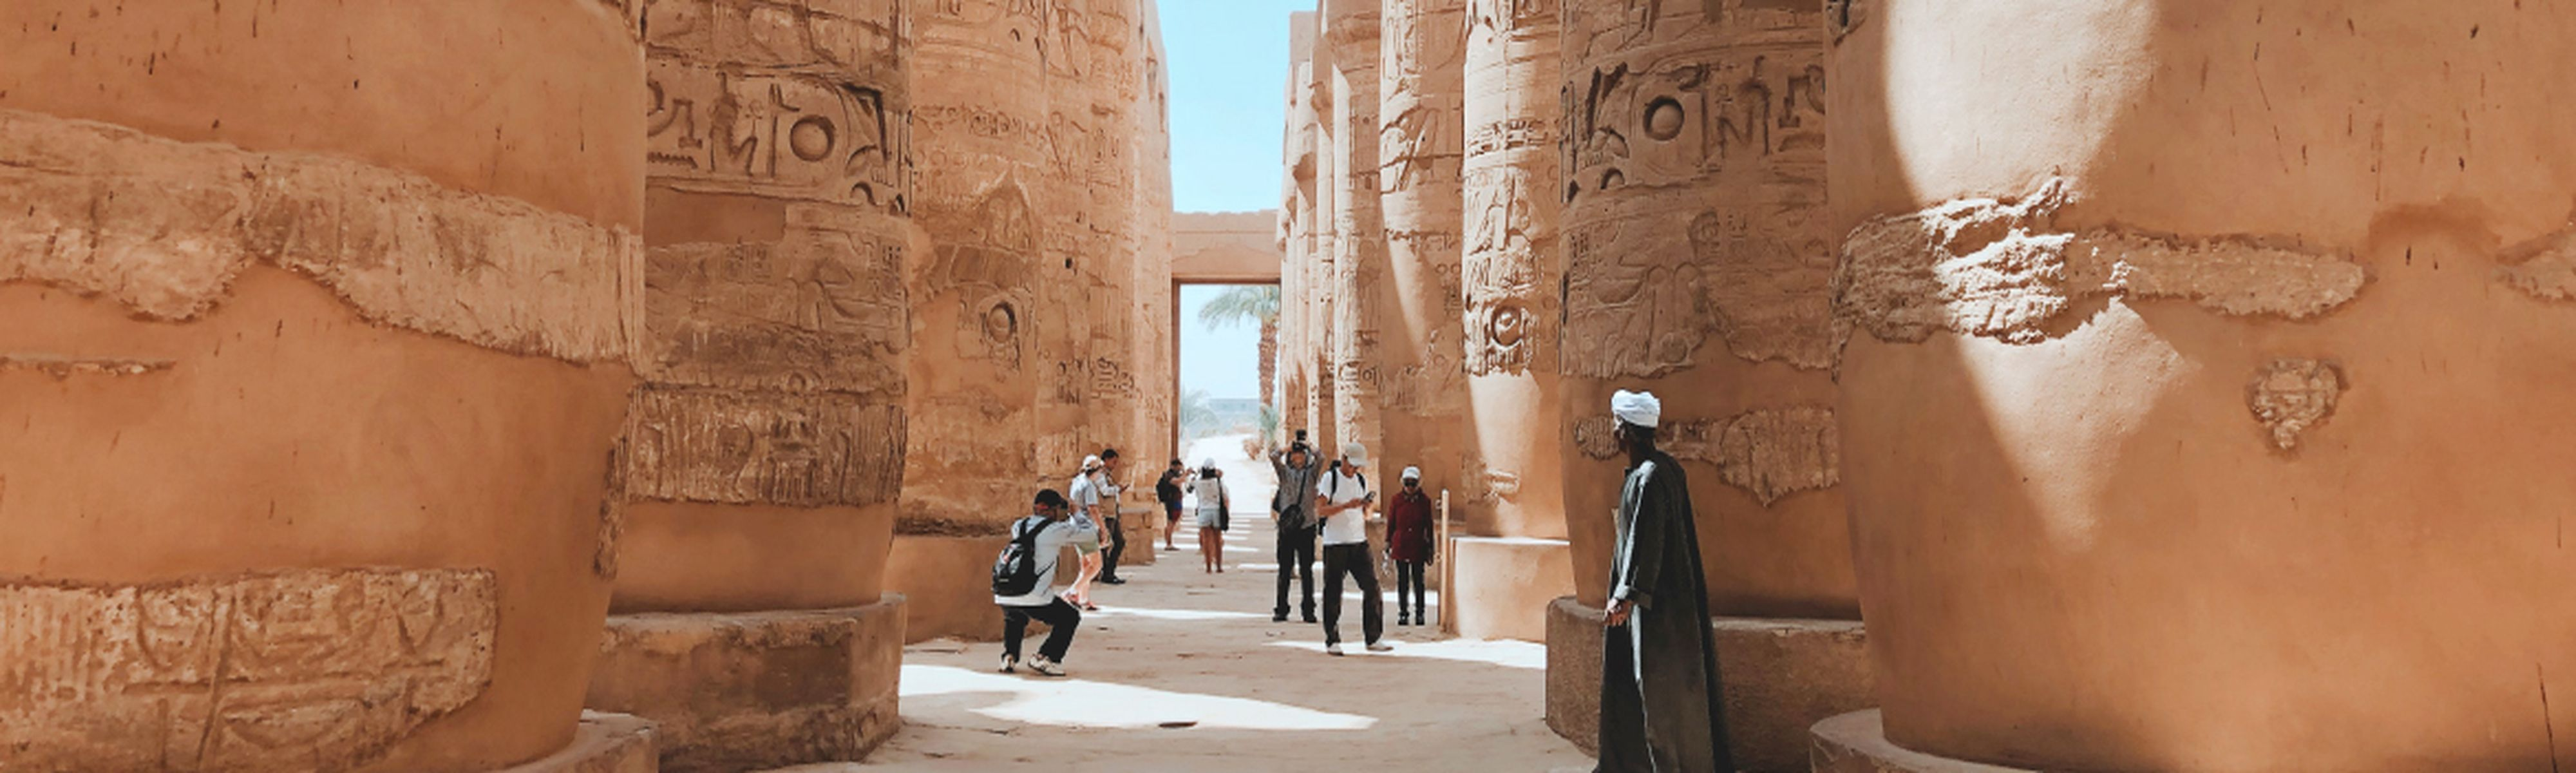 Group tour through Egyptian temple guard in Luxor, Egypt